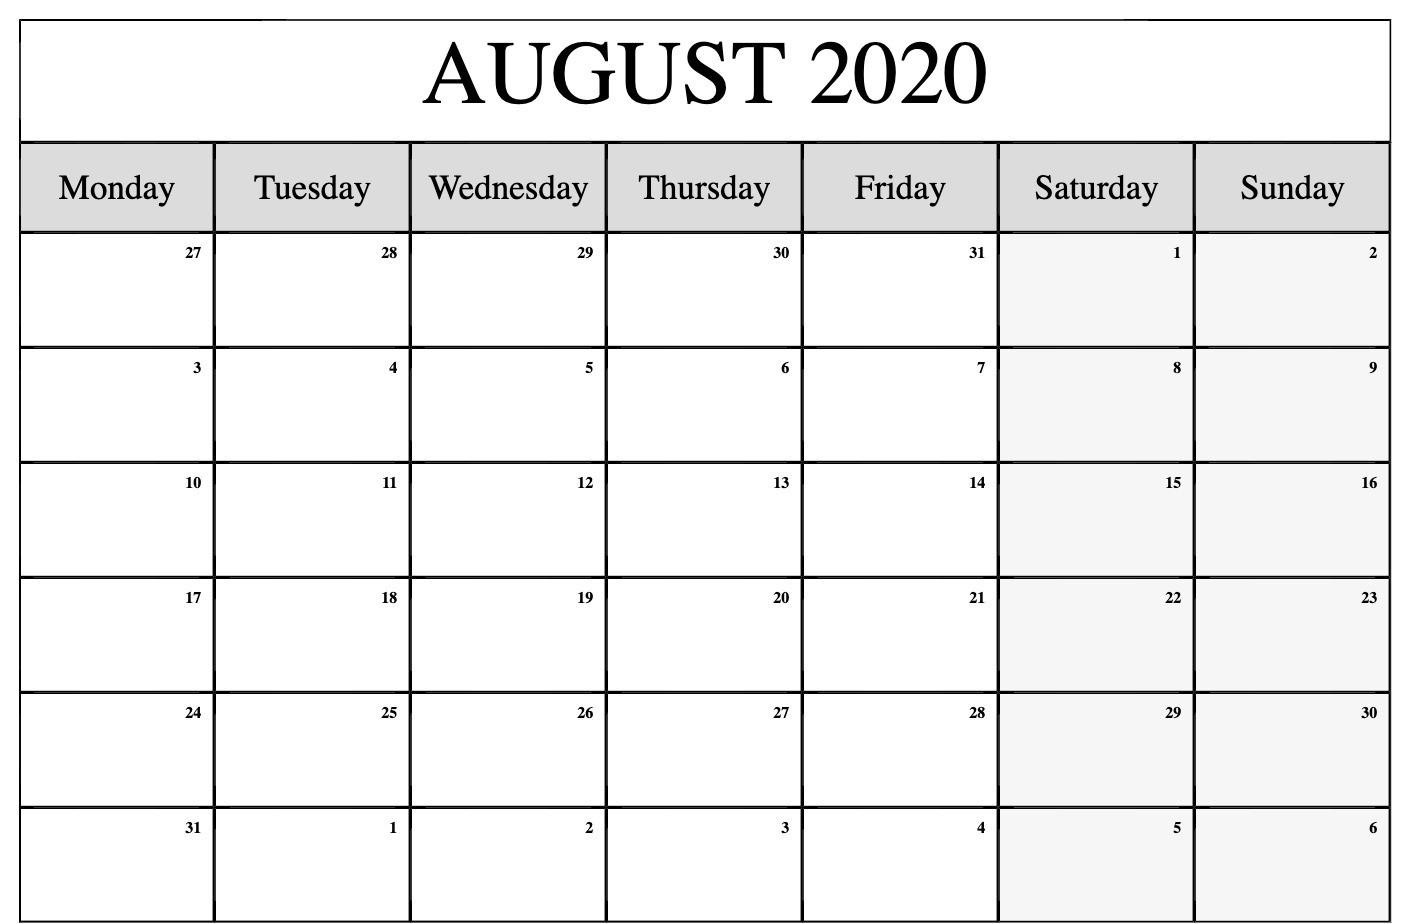 August 2020 Calendar Printable Template With Holidays-Printable Monthly Calendar June July August 2020